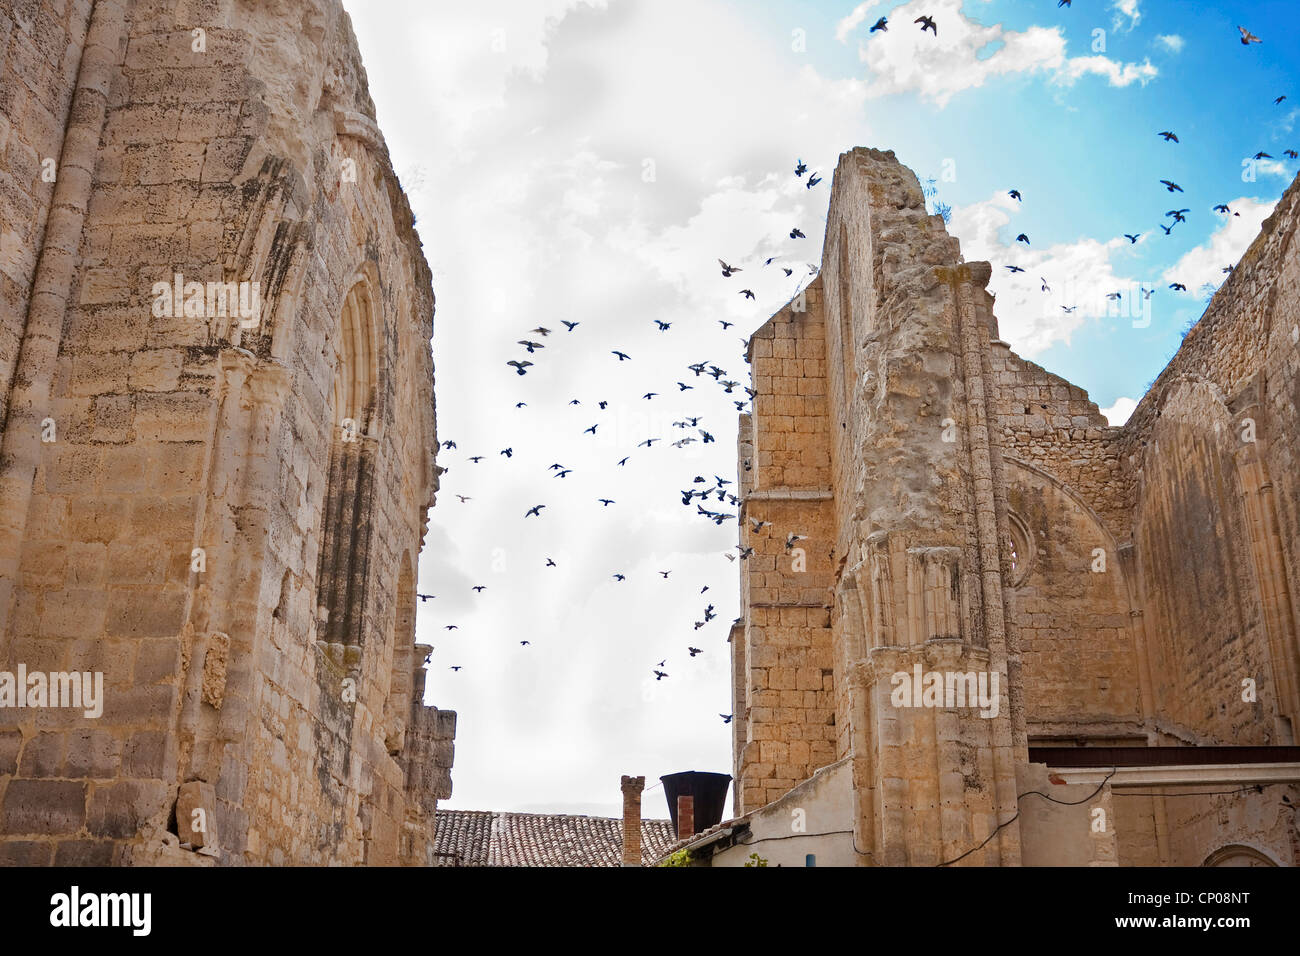 pigeons flying ver the ruin of Antonius church, Spain, Kastilien und Le�n, Burgos, San Anton - Stock Image